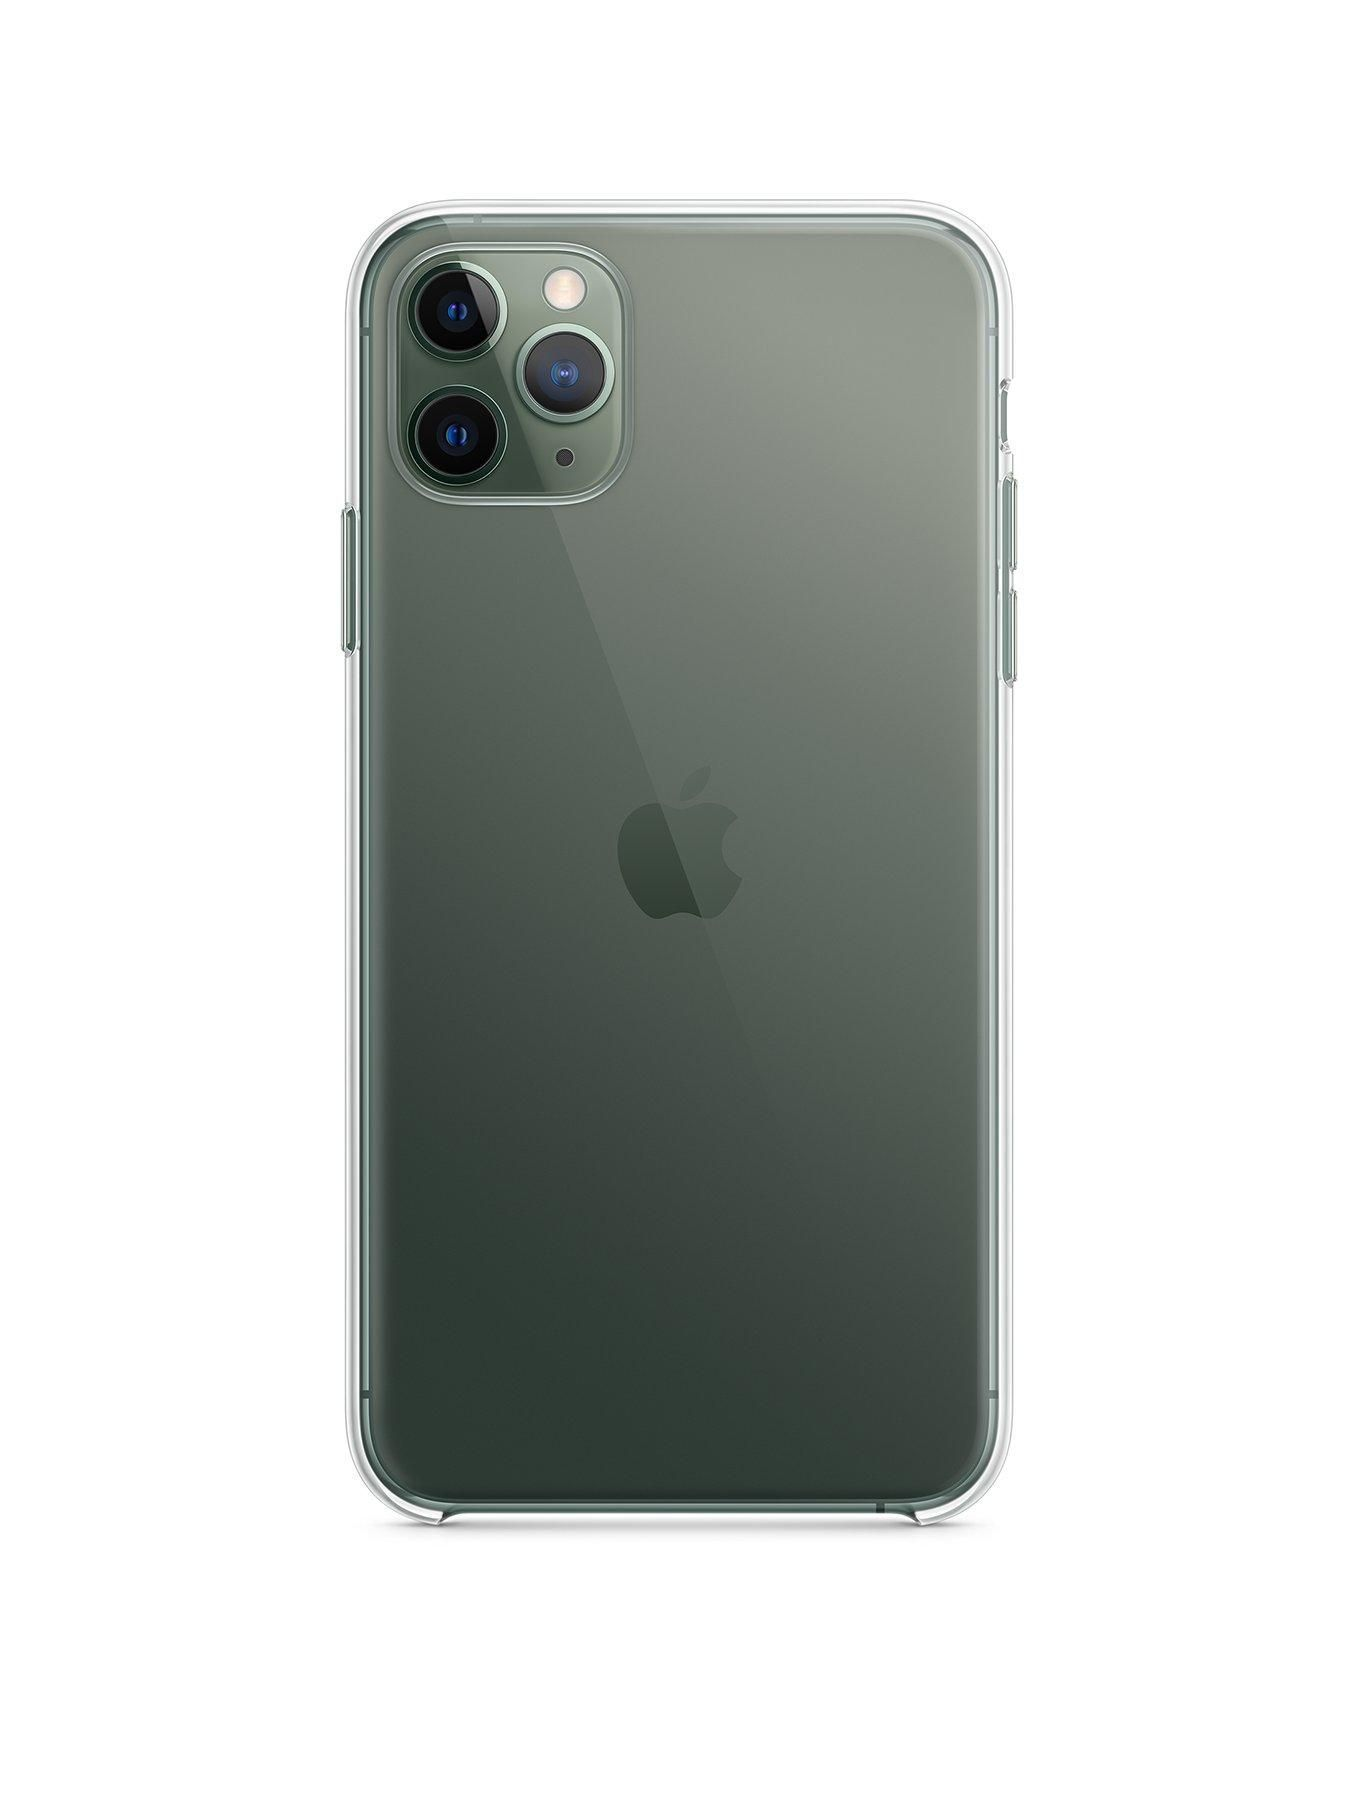 Iphone 11 Pro Max Clear Case Clear Cases Iphone Iphone 11